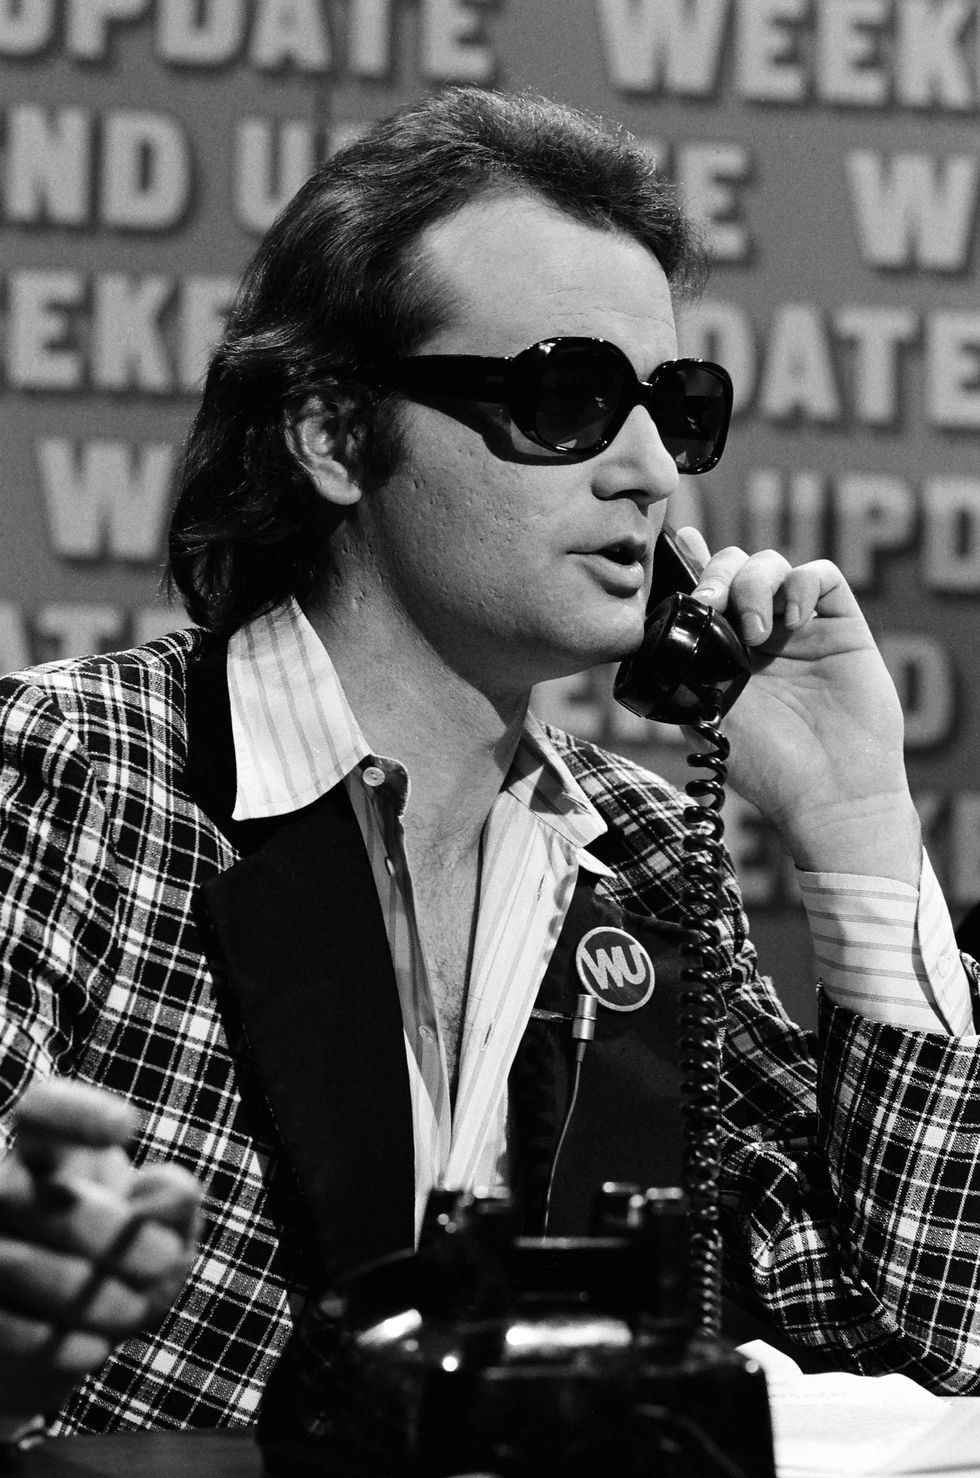 Bill Murray during the SNL 'Weekend Update' skit on May 20, 1978.